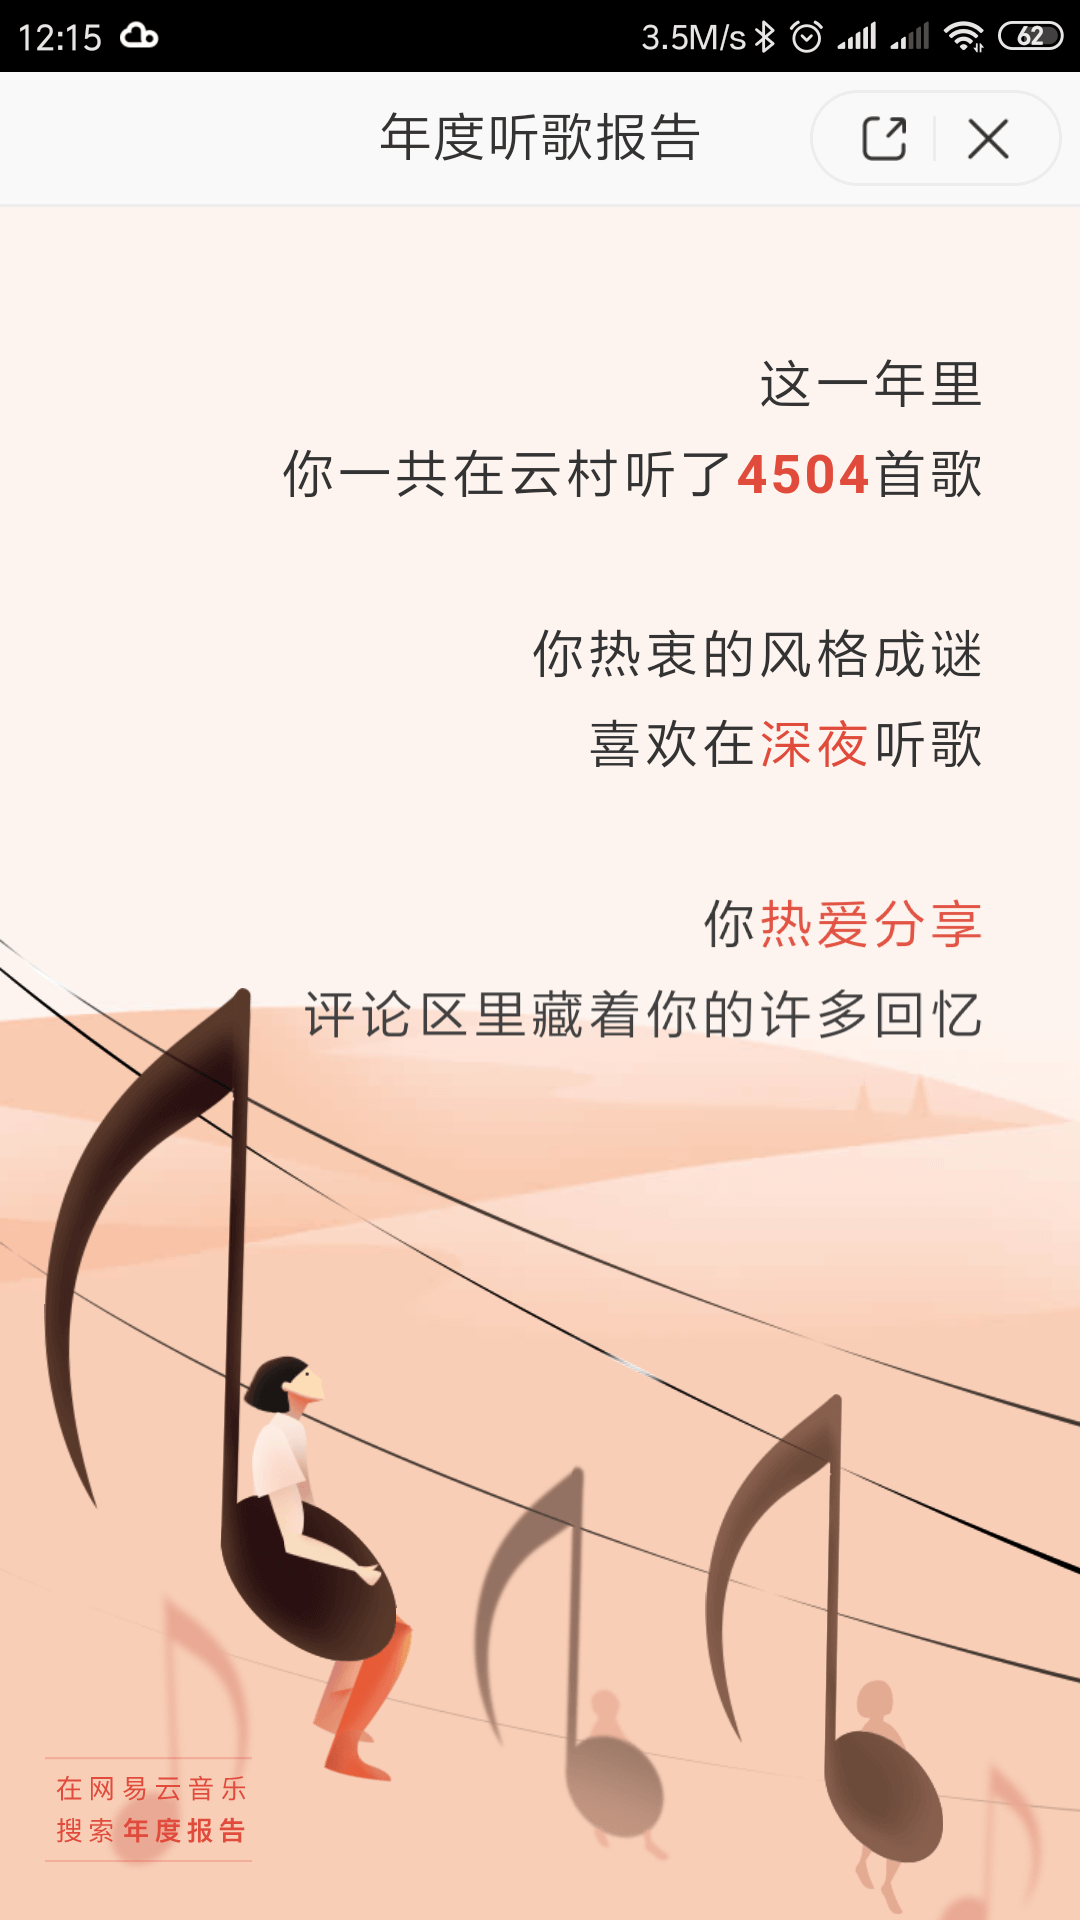 Screenshot_2019-01-04-12-15-14-837_com.netease.cloudmusic.png